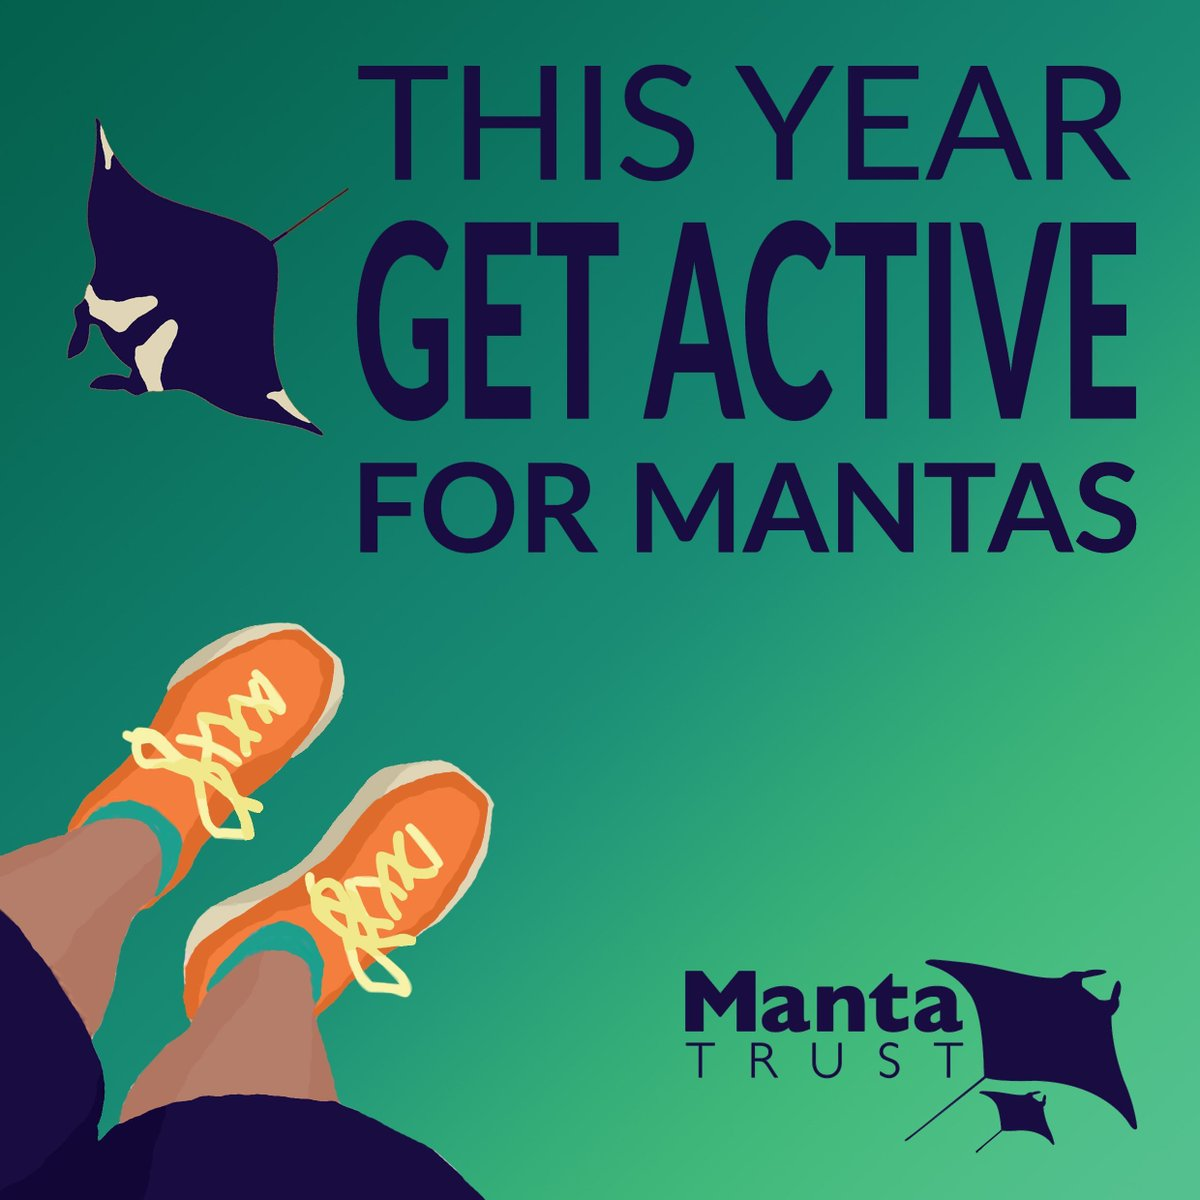 We&#39;re looking for Ocean Heros to #GetActive in 2019.  #Run, #Swim or #DoYourOwnThing to help raise vital funds for #mantaray research and #conservation.   http:// bit.ly/2IZKzq5  &nbsp;   or email us.  #manta #challenge #charity @scubadivergirls @SuuntoDivingUK  @BSACdivers @saveourseas<br>http://pic.twitter.com/DRUlimJSVZ